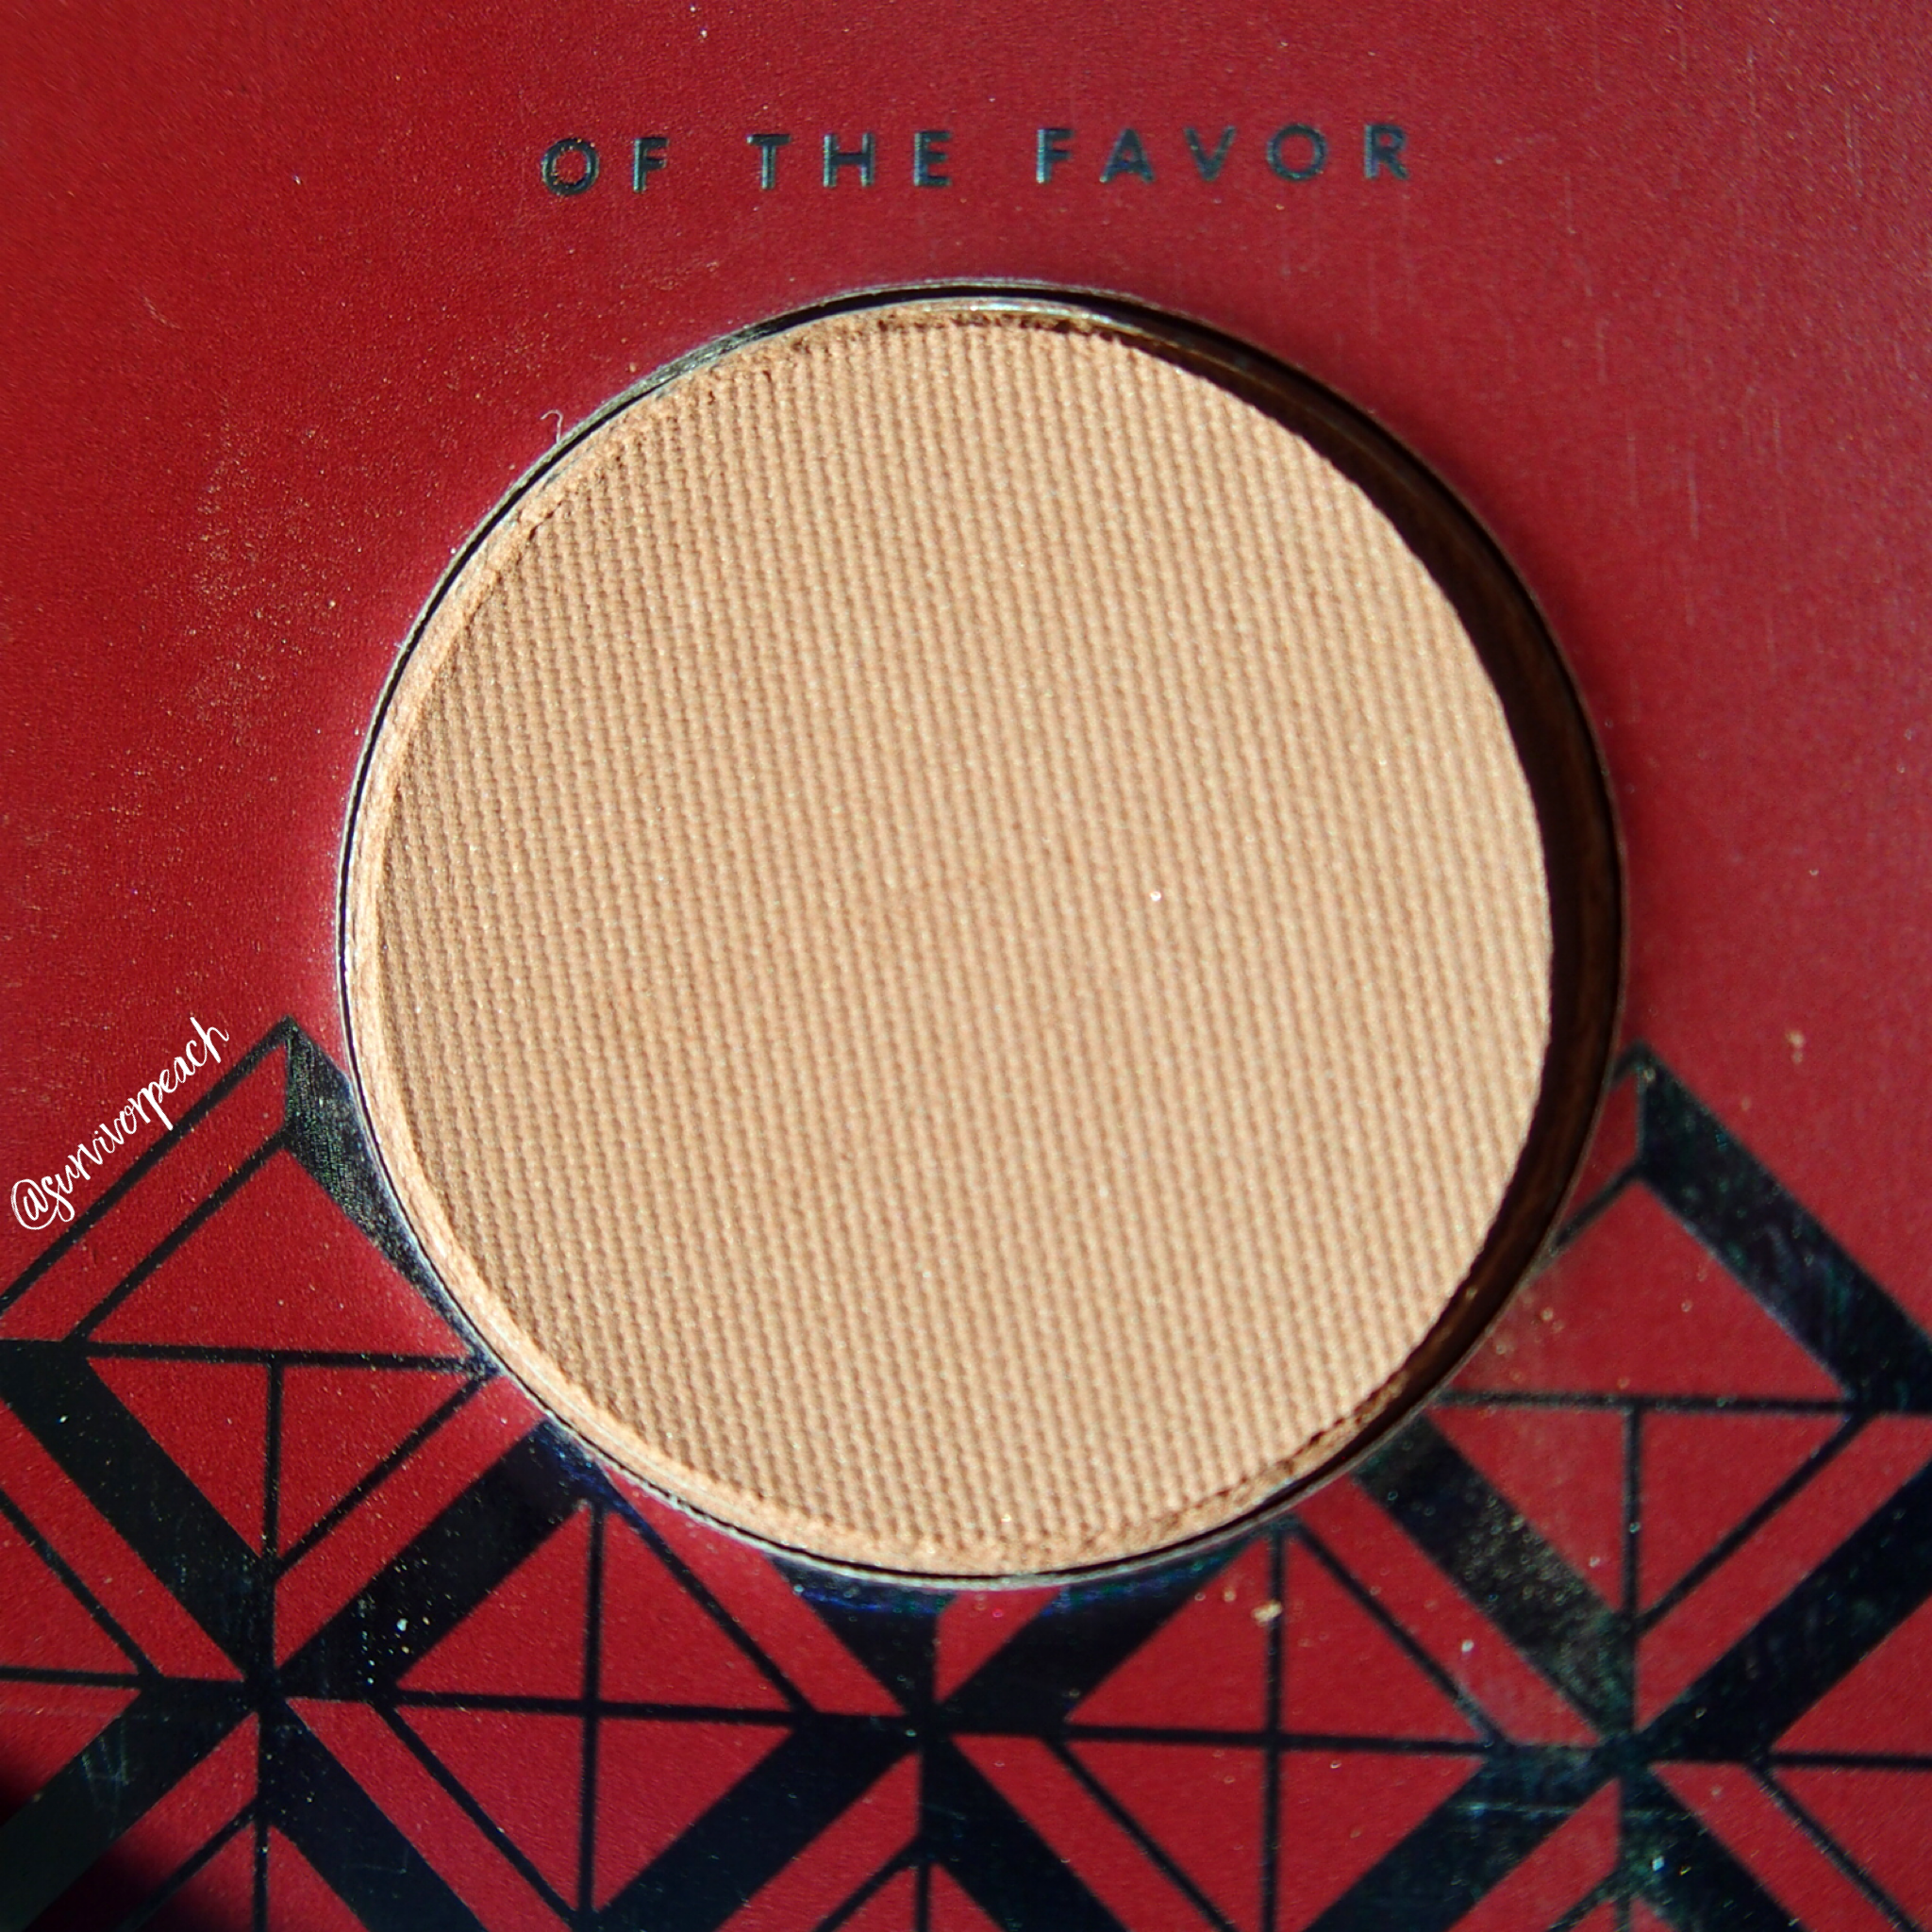 Zoeva Spice of Life Eyeshadow Palette -Of the Favor